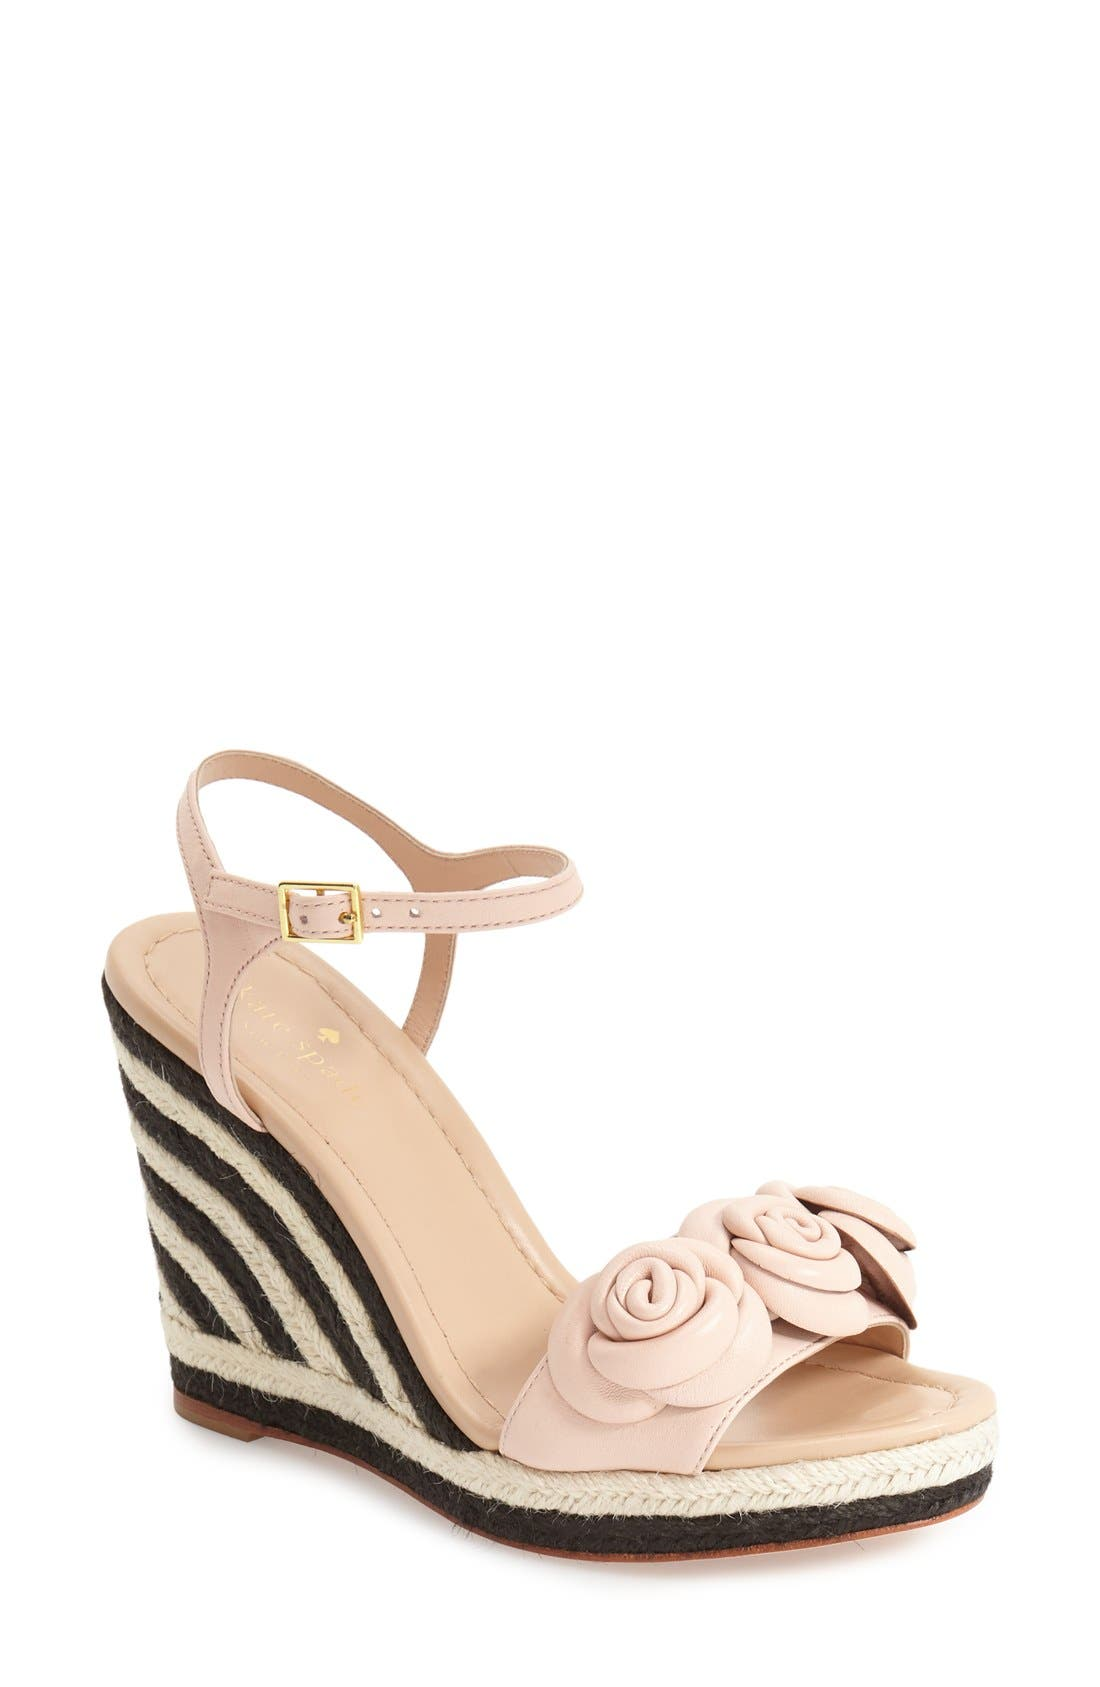 Alternate Image 1 Selected - kate spade new york 'jill' espadrille wedge sandal (Women)